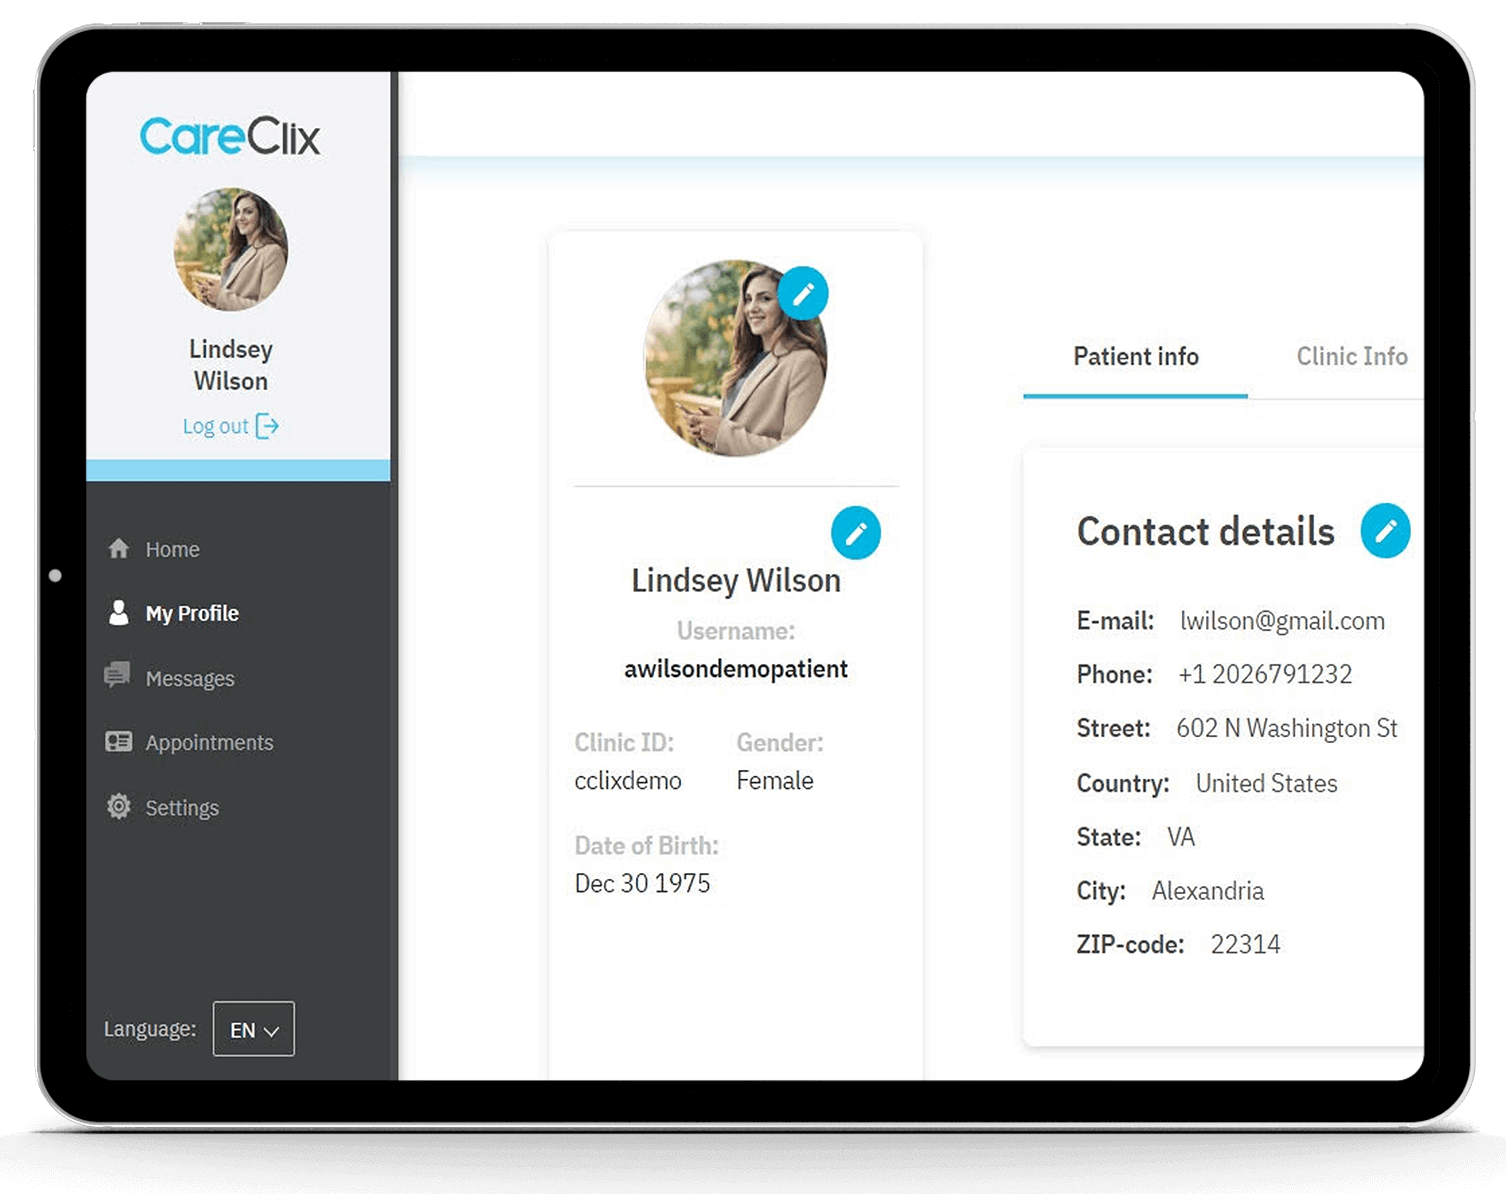 Contact Details screen on the CareClix app